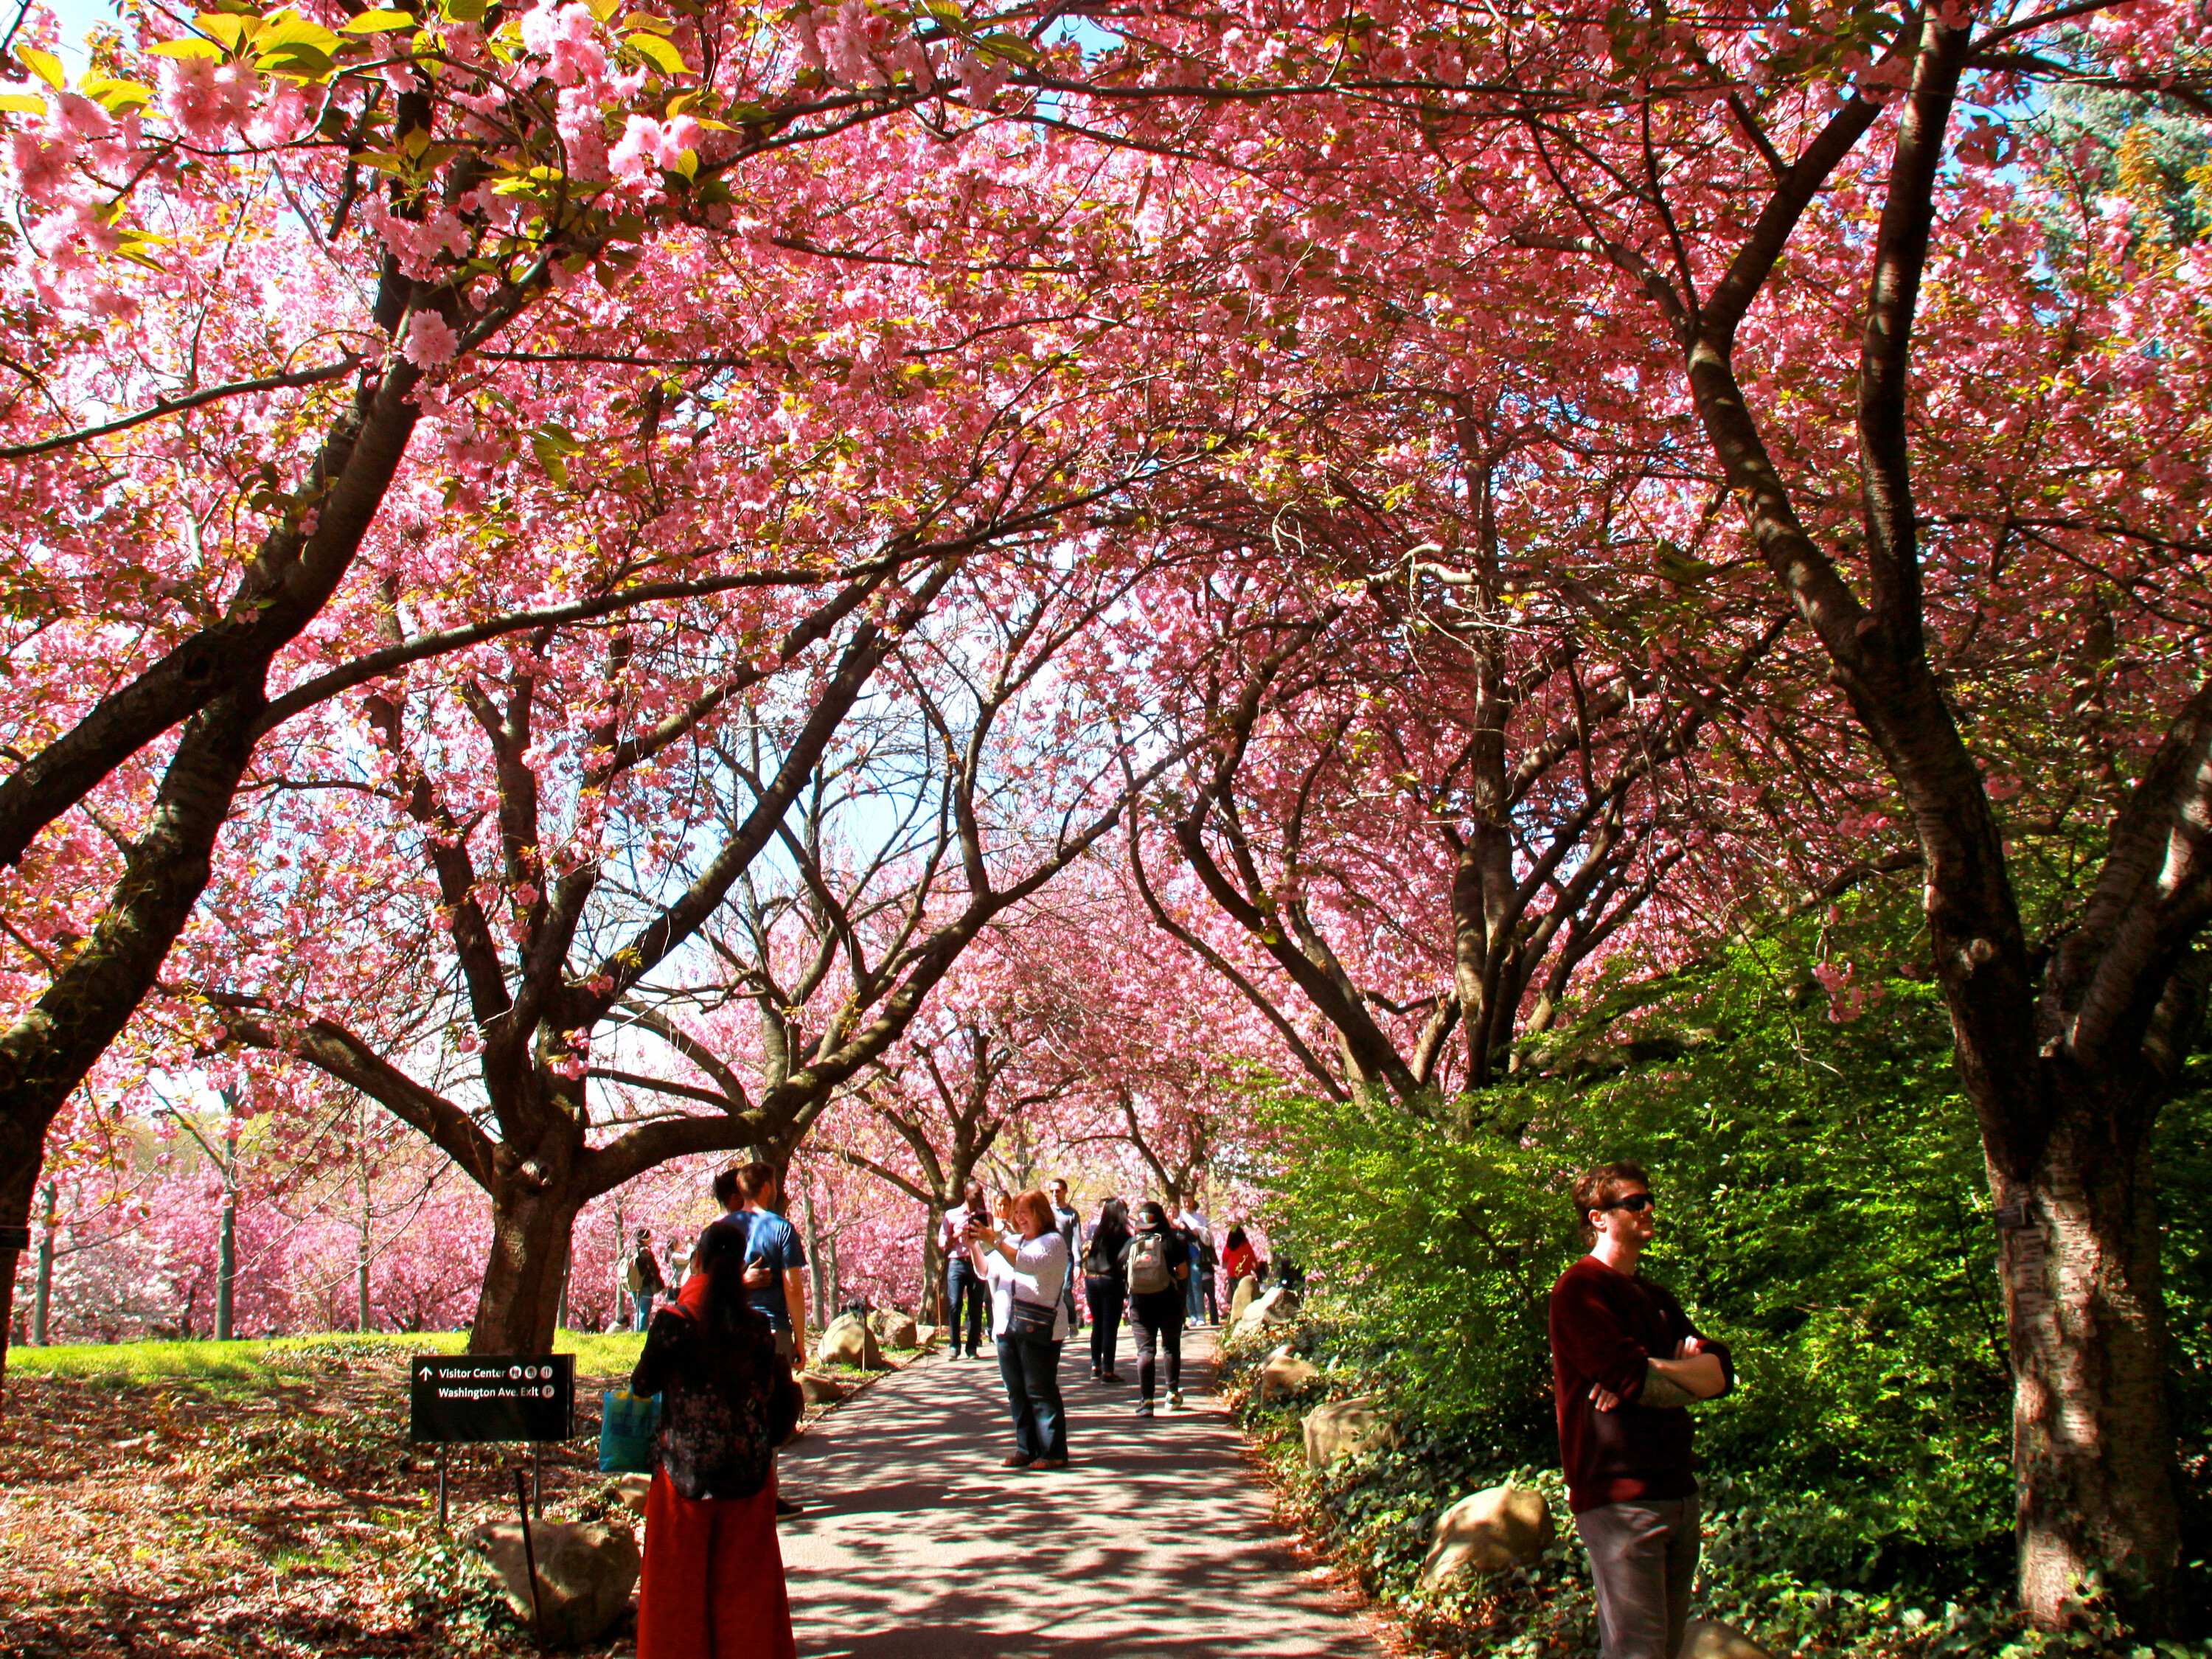 Cherry blossom in New York, USA